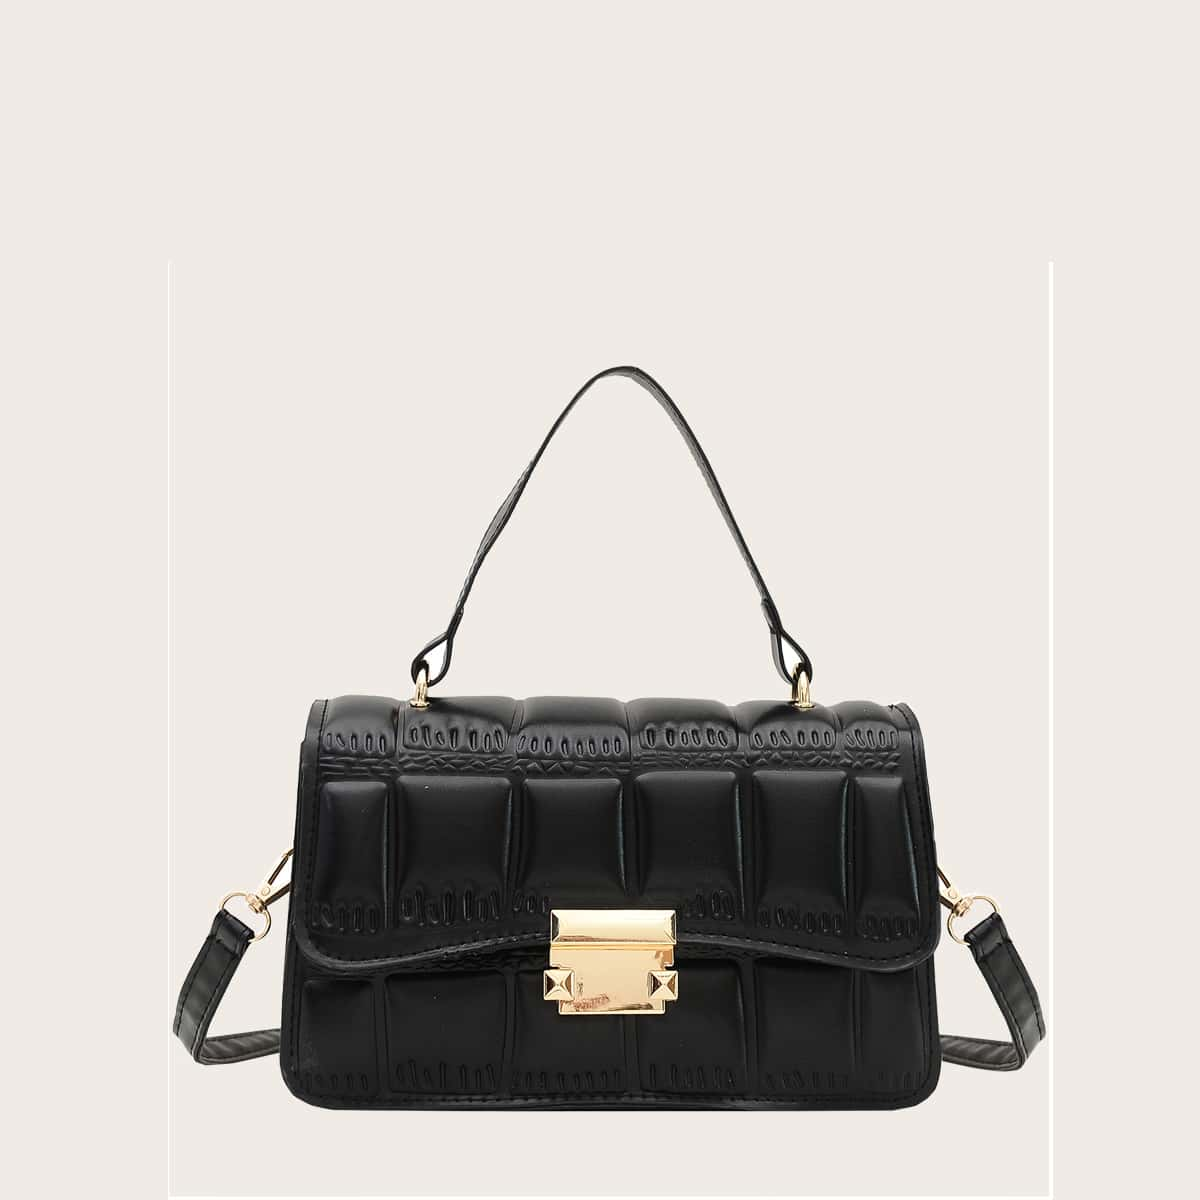 SHEIN / Textured Push Lock Satchel Bag